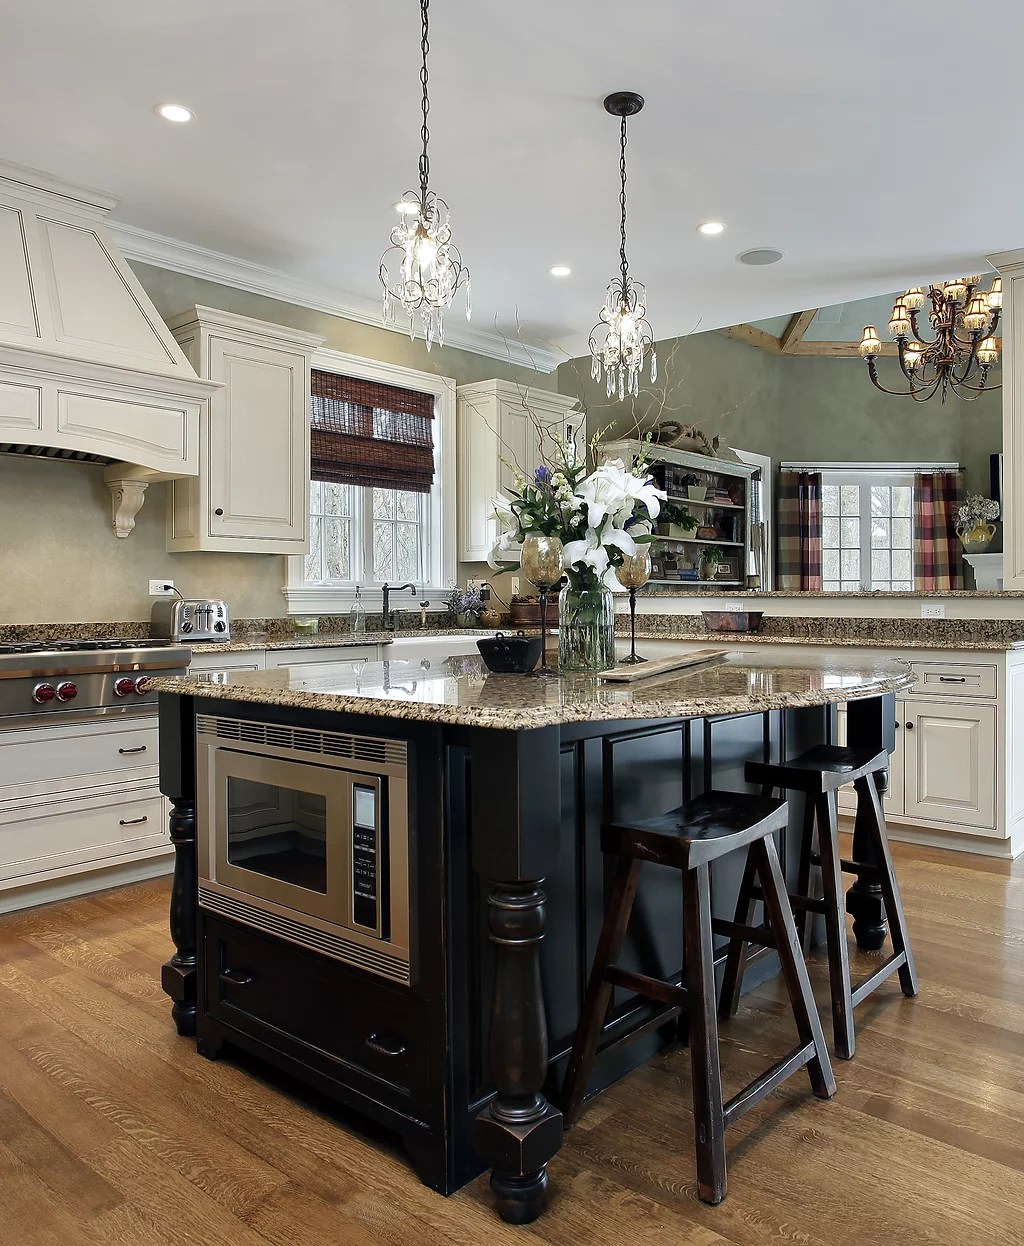 Kitchen Countertop Cabinets Cabinets Countertop In Jacksonville Fl Up To 50 Off